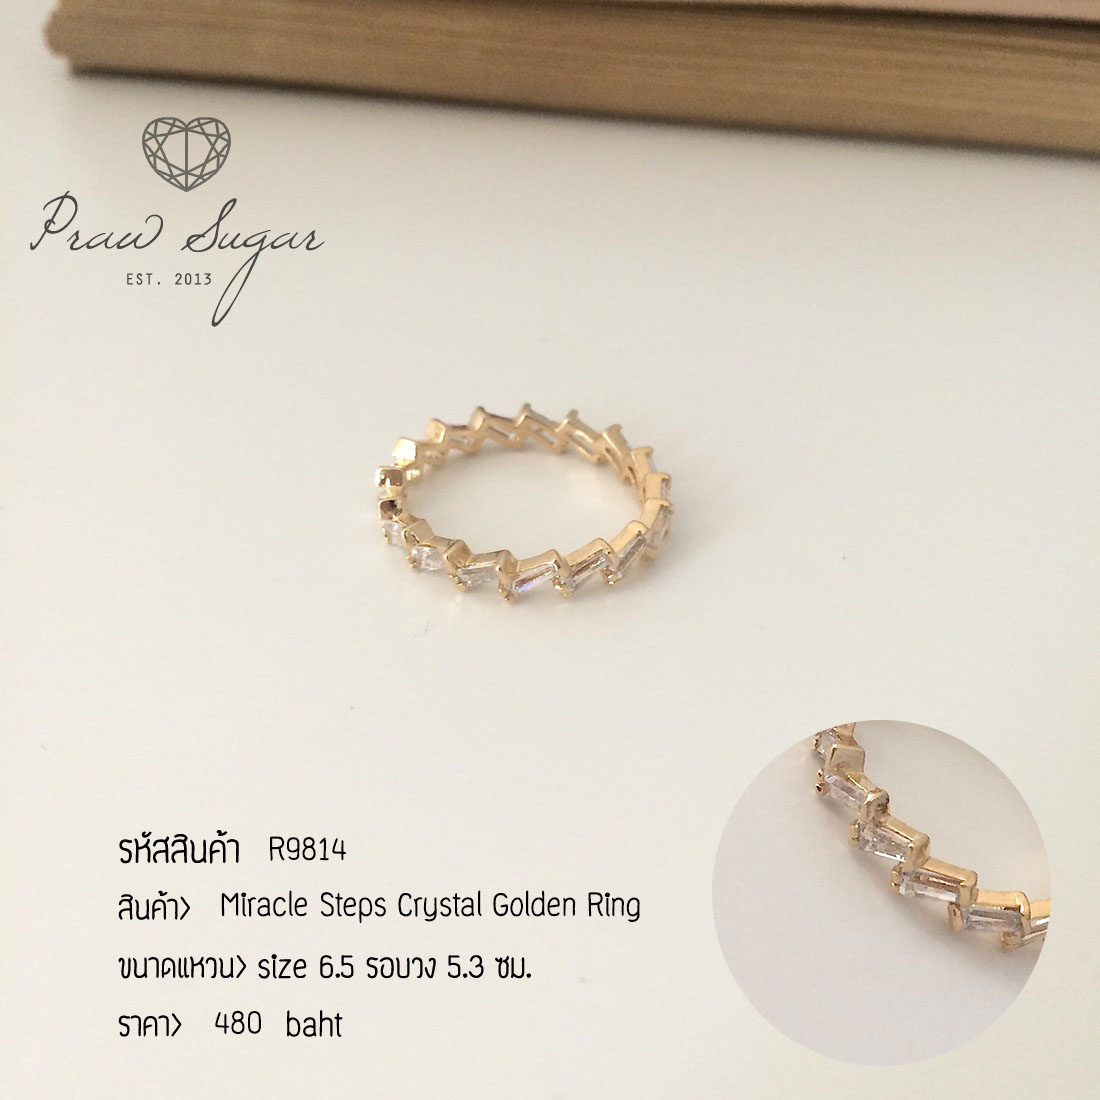 Miracle Steps Crystal Golden Ring